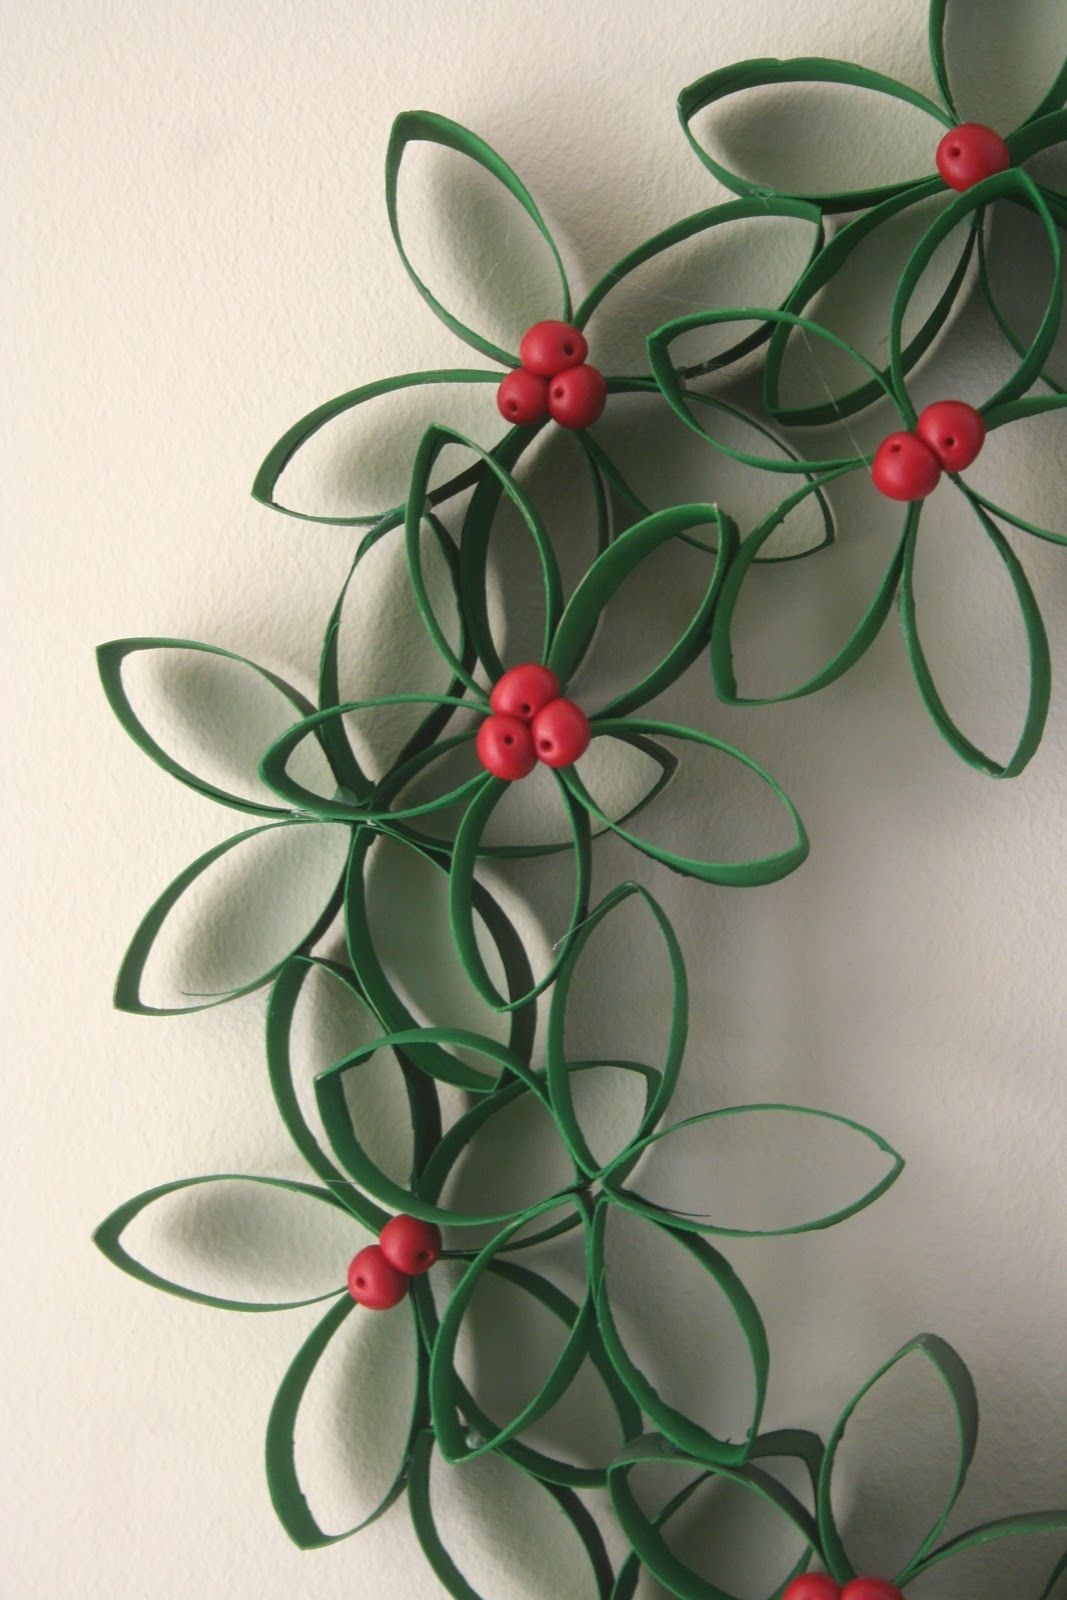 Toilet Paper Roll Wreaths Could Make Ornaments Too Possible